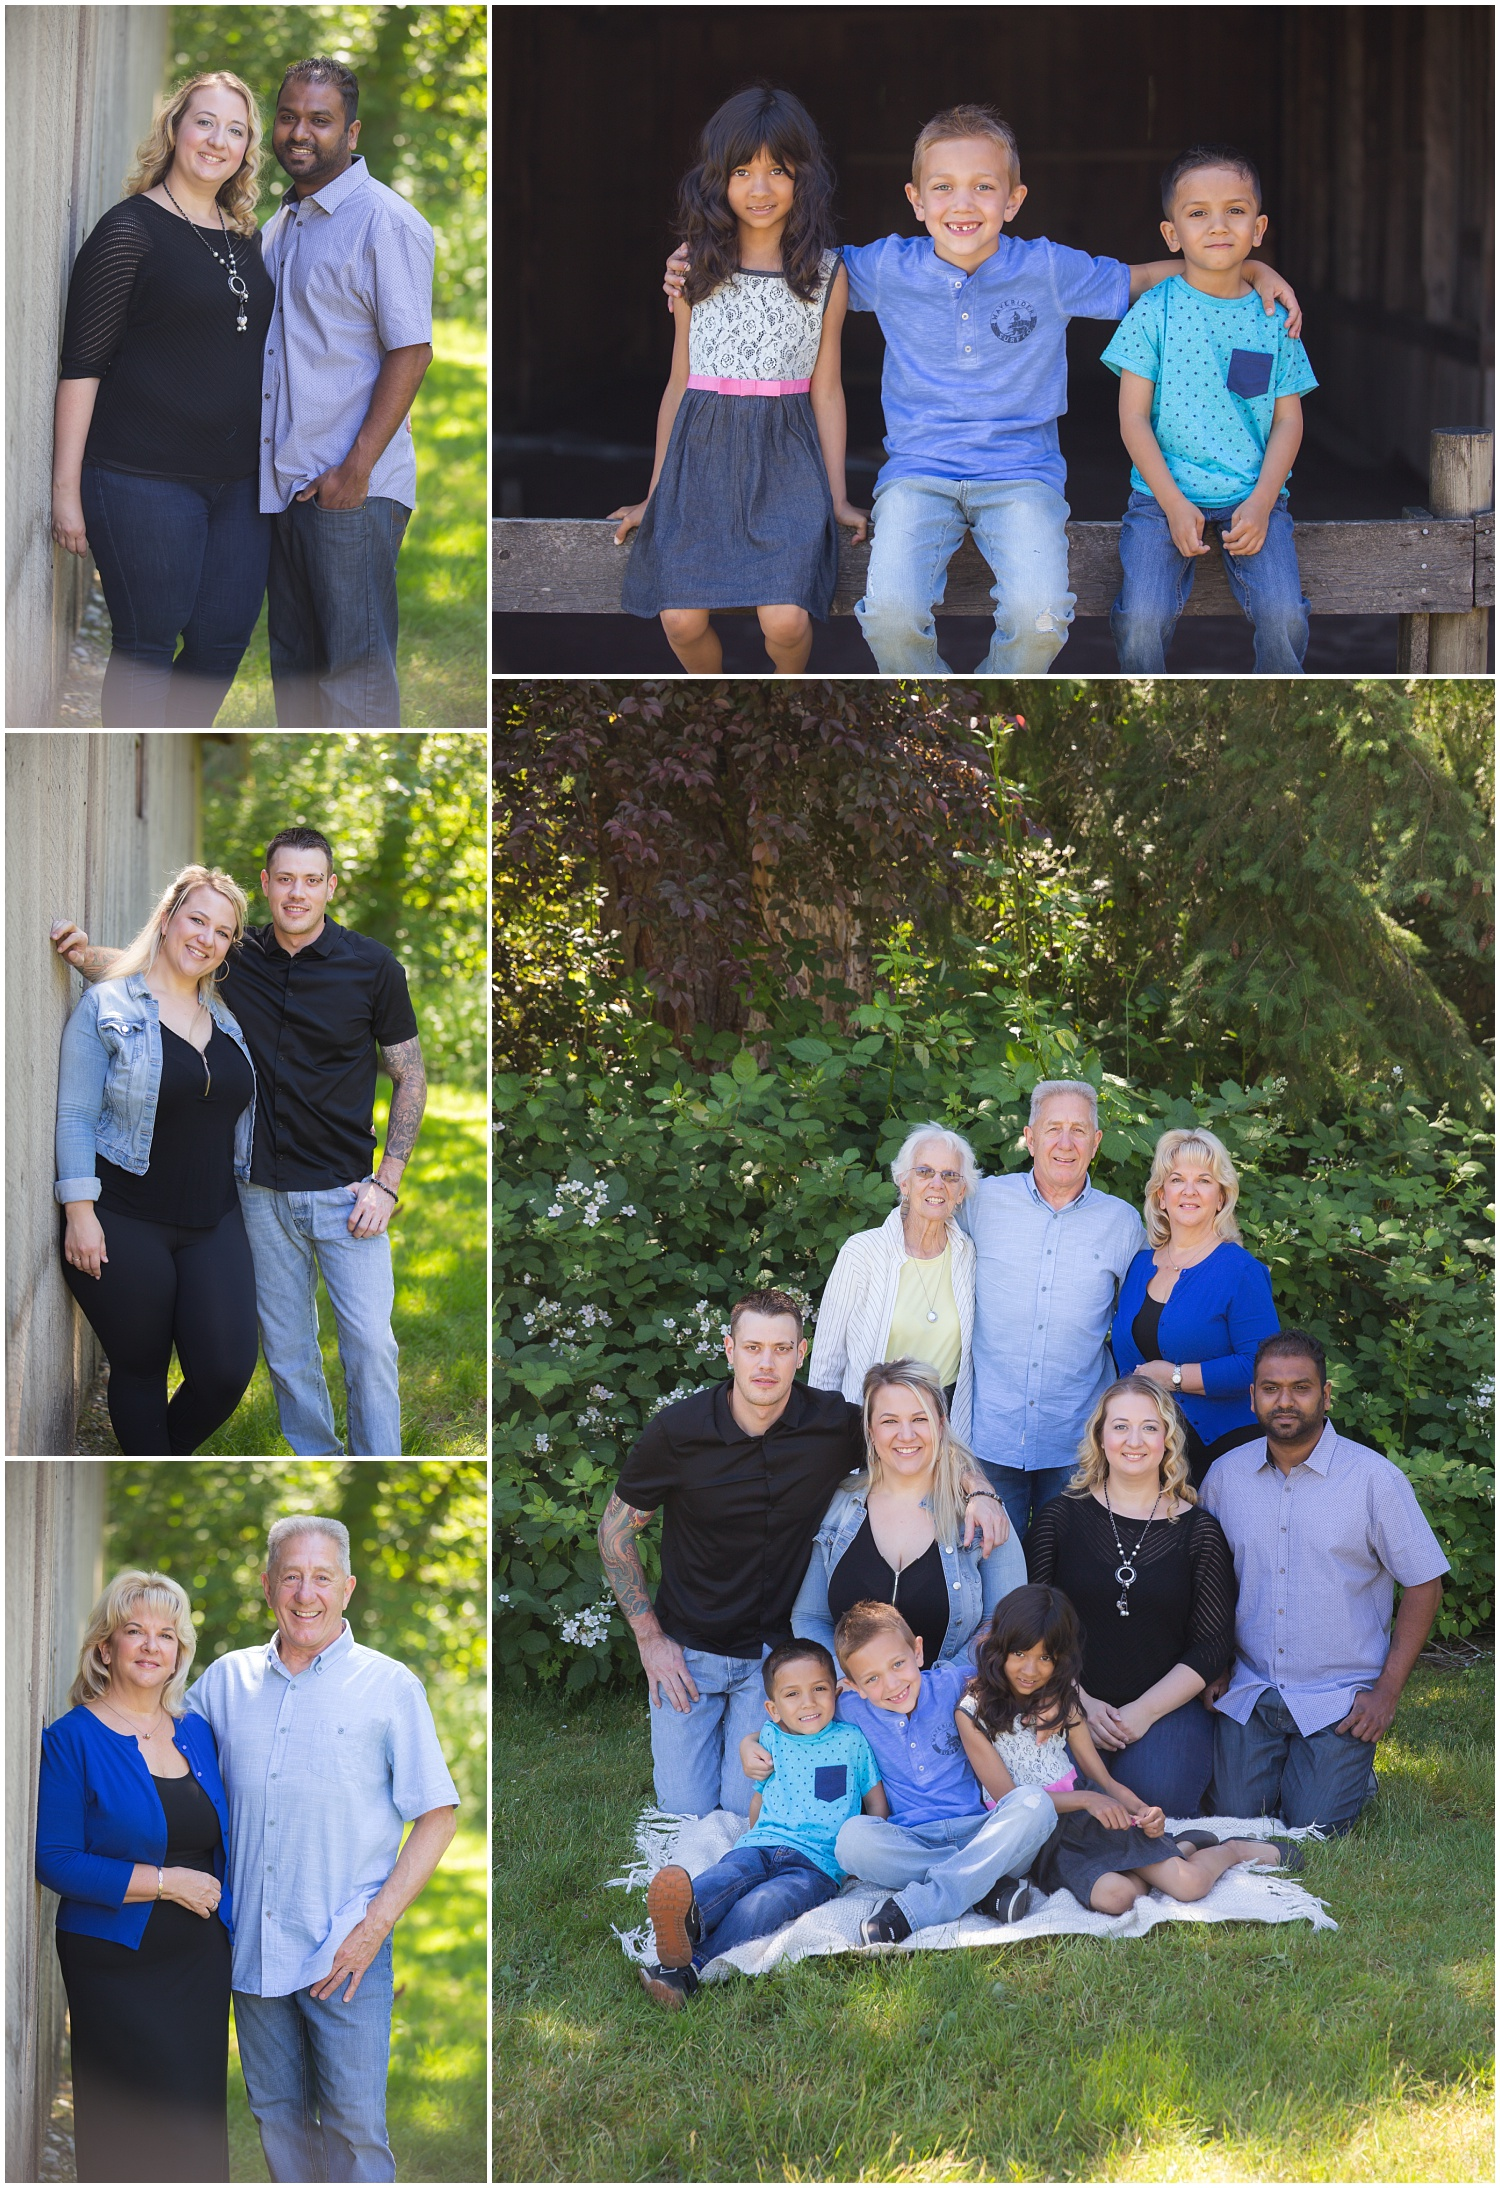 Amazing Day Photography - Stewart Farm House Family Session - Photo 4 Hope - BC Childrens Hospital Fundraiser (5).jpg